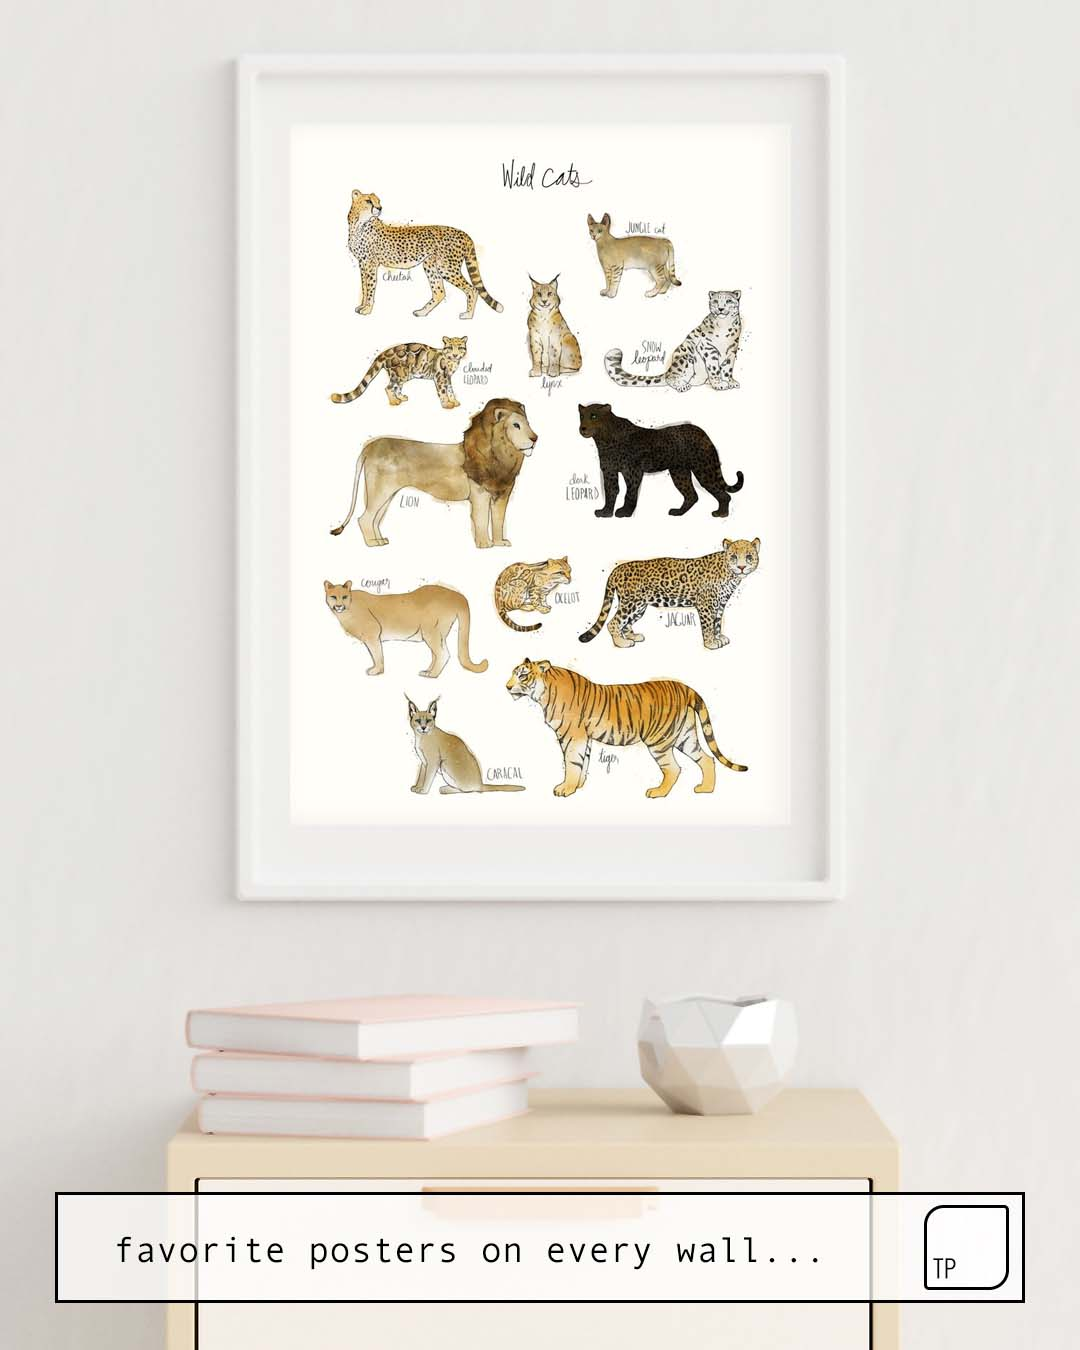 Poster | WILD CATS by Amy Hamilton